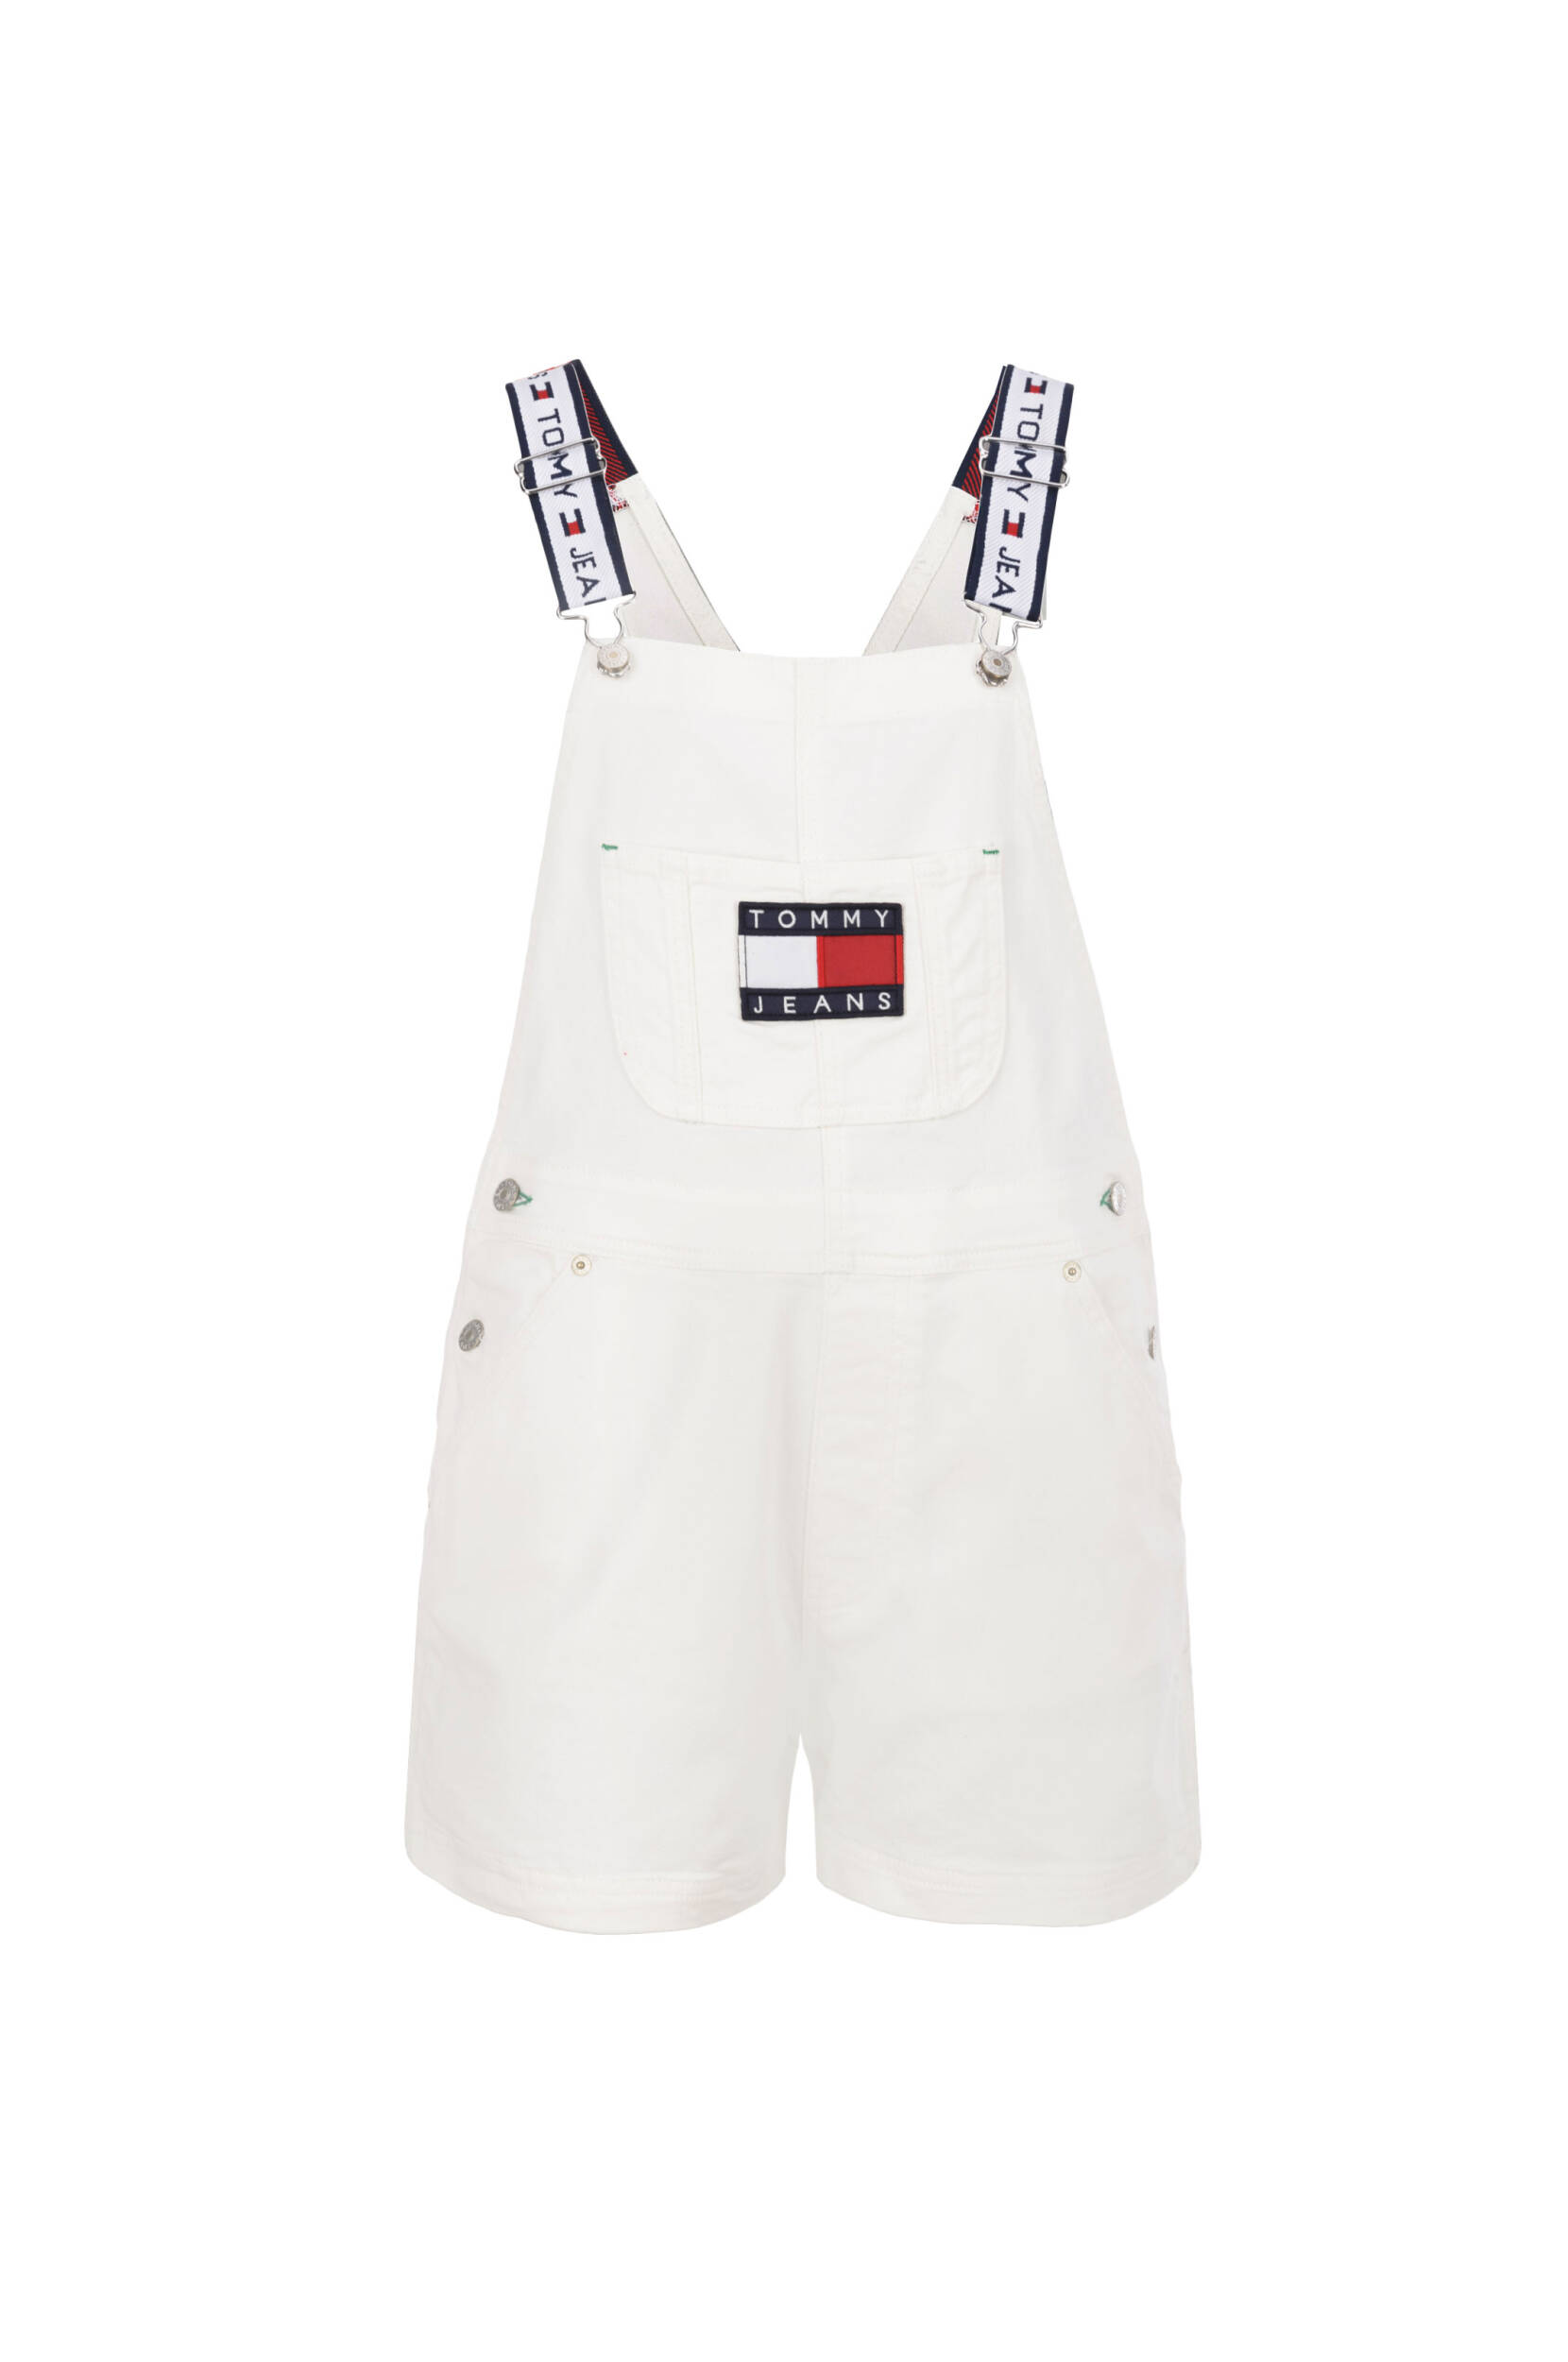 Tommy Jeans Dungarees Hilfiger Denim White